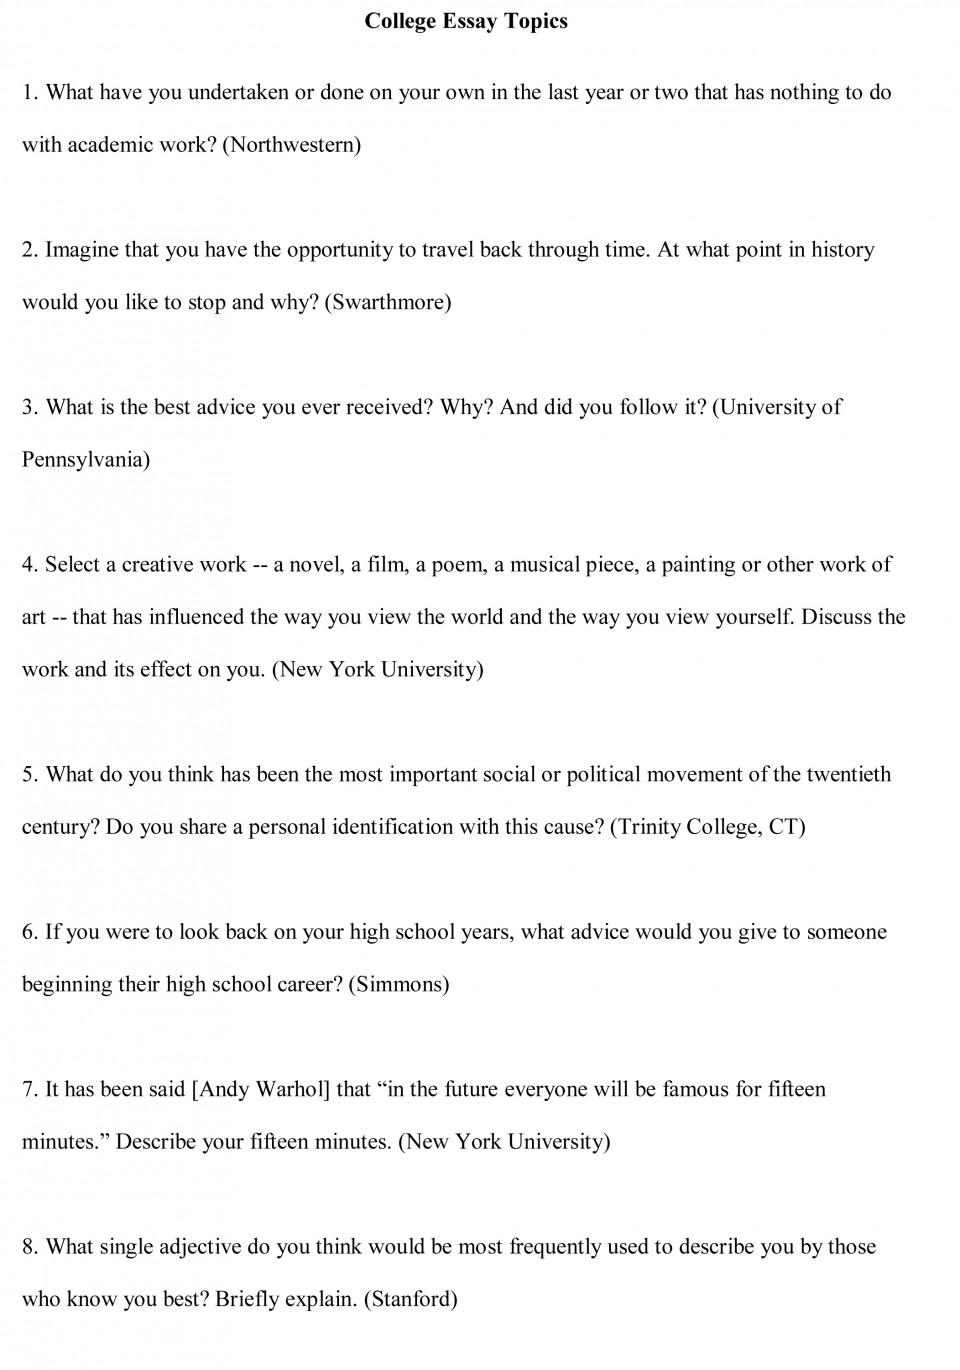 What Is A Thesis Statement In A Essay   College Essay Topics Free Sample Good Persuasive Amazing Easy  Speech Reddit Sports Interesting For Middle  What Is The Thesis In An Essay also English Essay Topics For College Students  Good Persuasive Essay Topics Kgwzqlu  Thatsnotus Buy Custom Essay Papers